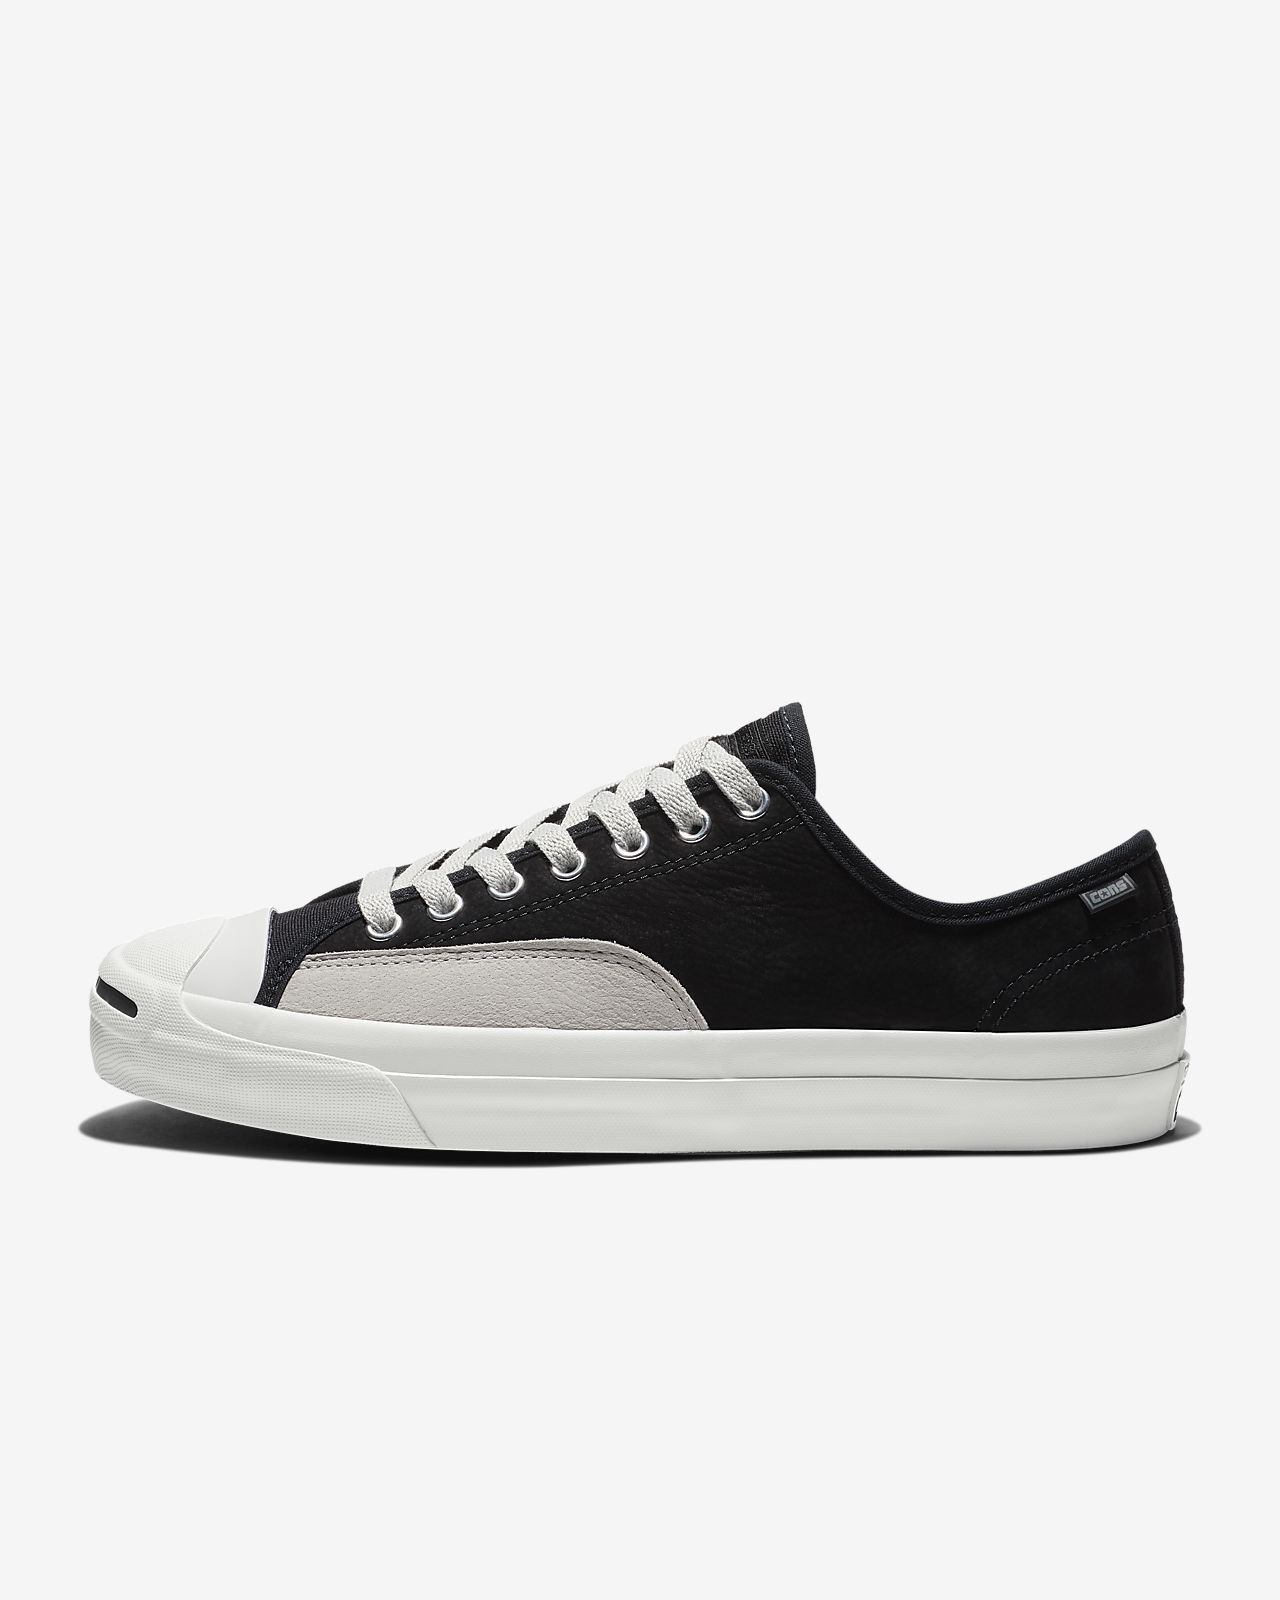 Converse Jack Purcell Pro Leather Low Top  Men's Skate Shoe